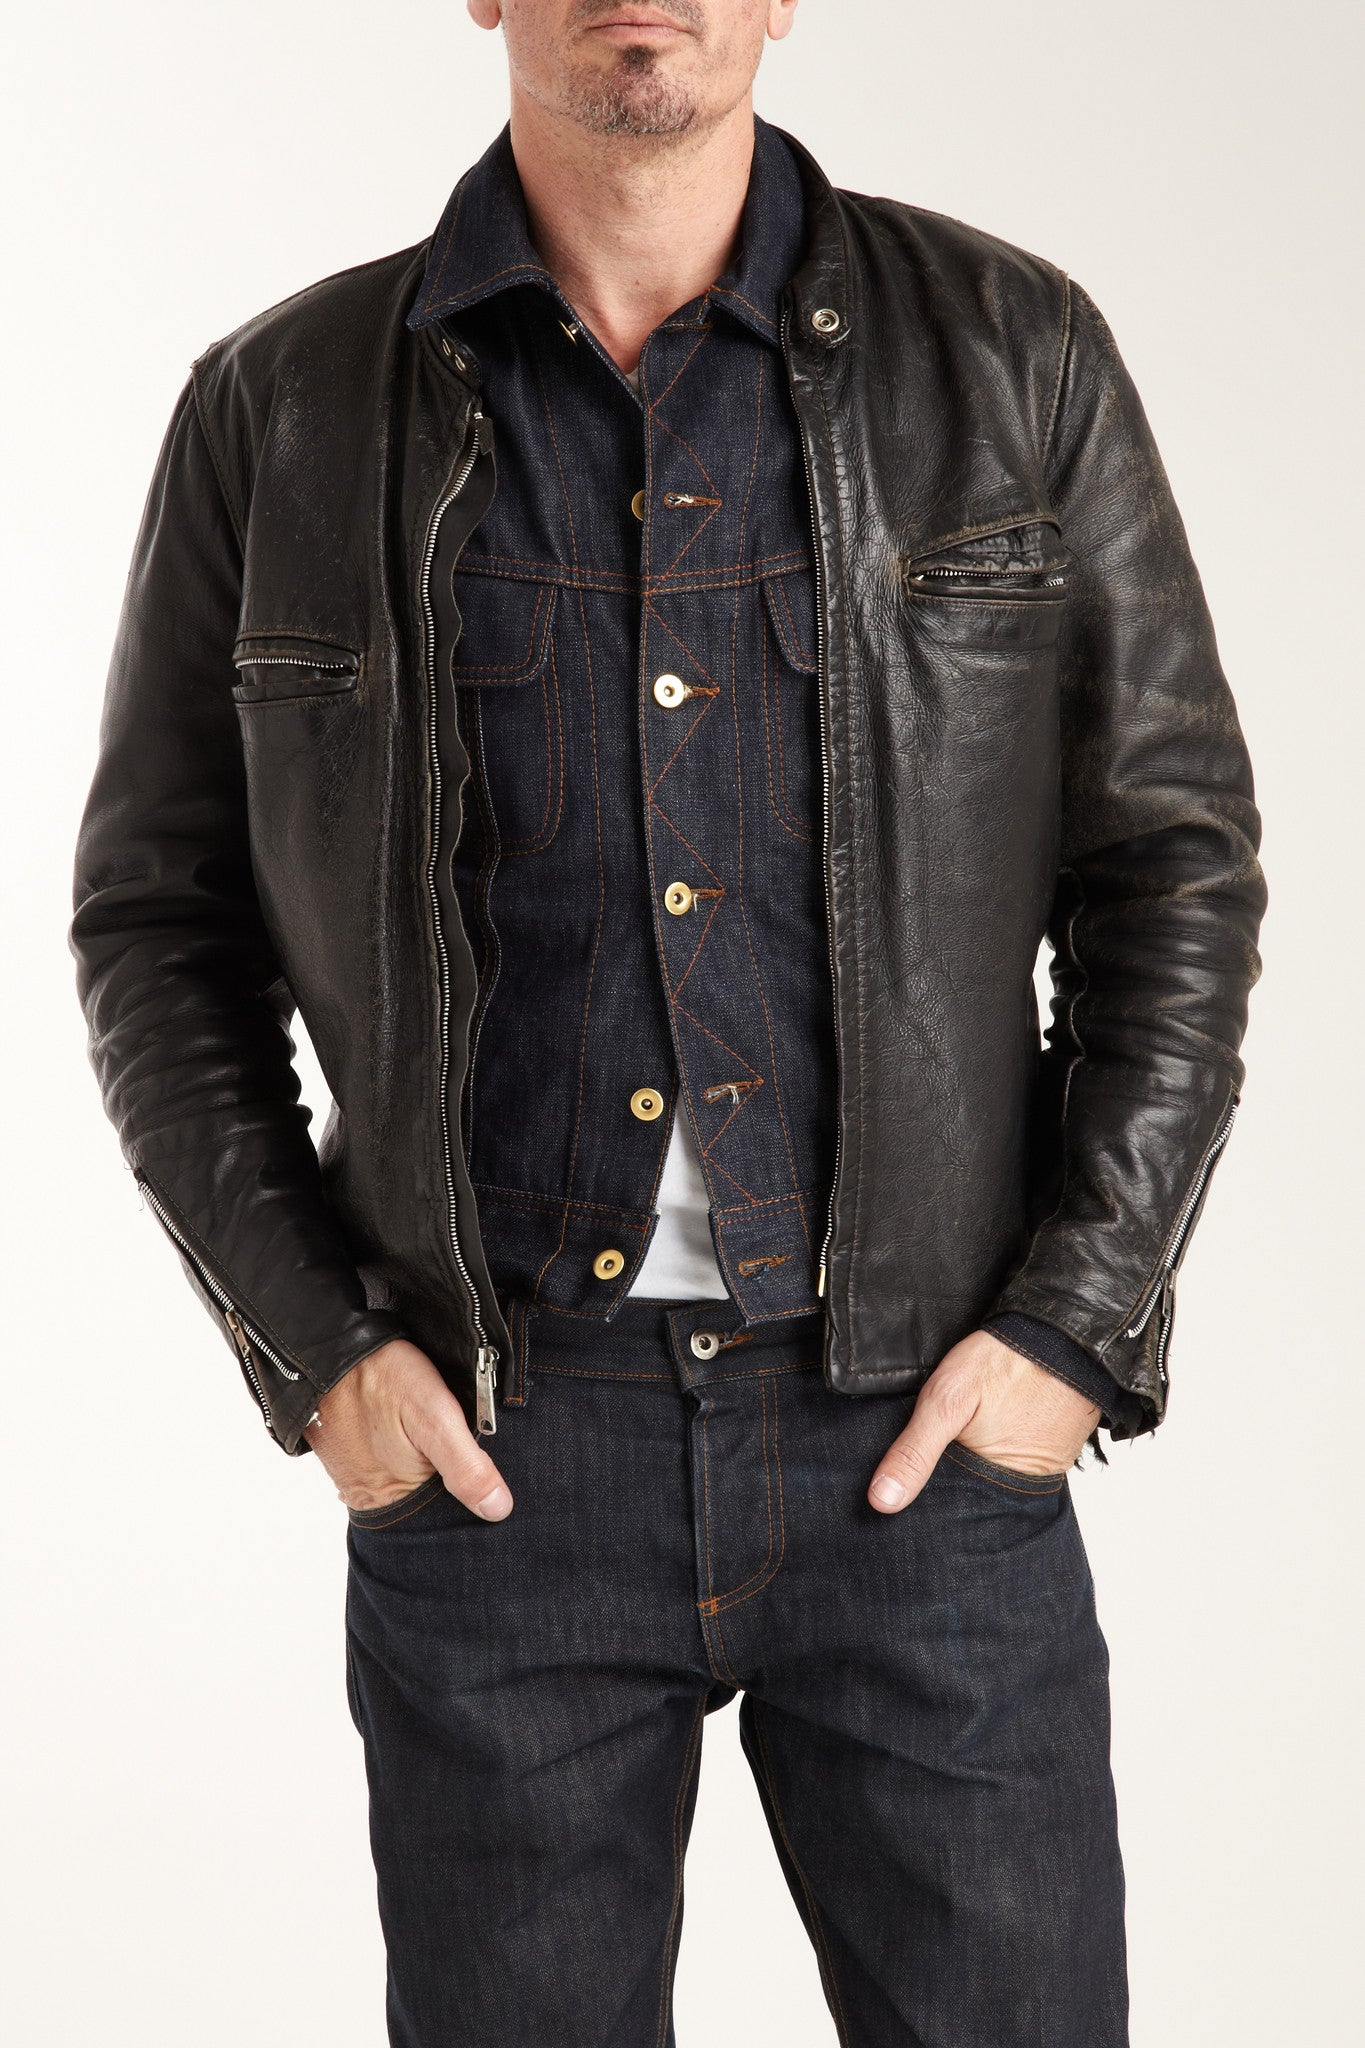 The Steadfast Selvedge Denim Jacket Cone Mills Denim Brave Star